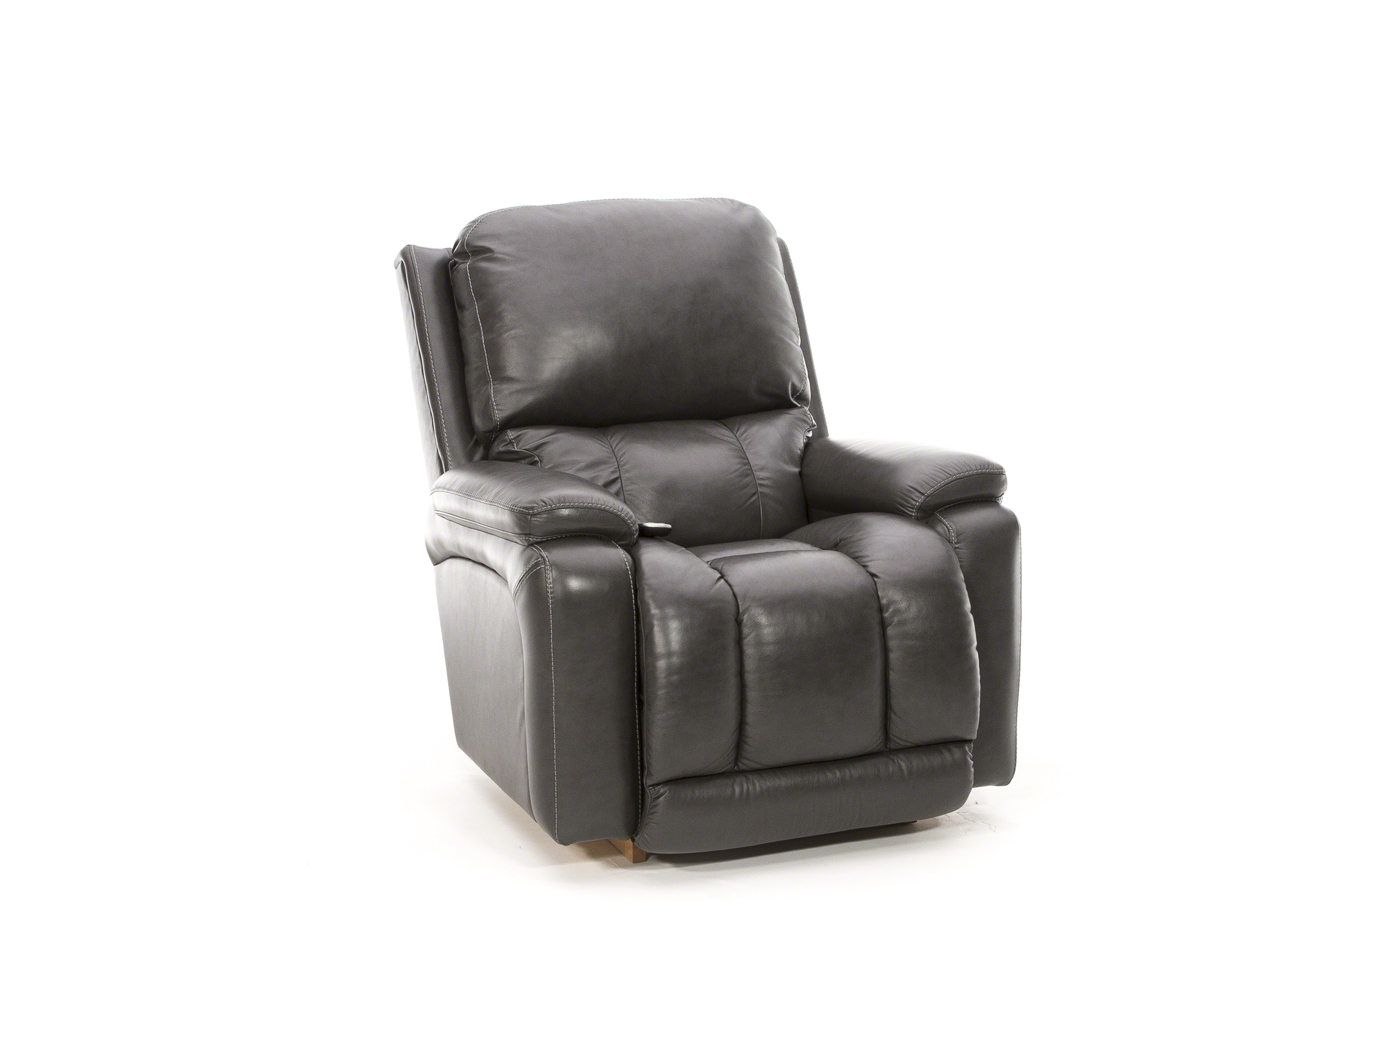 gallery rocker recliner chairs glider best town reclina small chair harbor home decoration